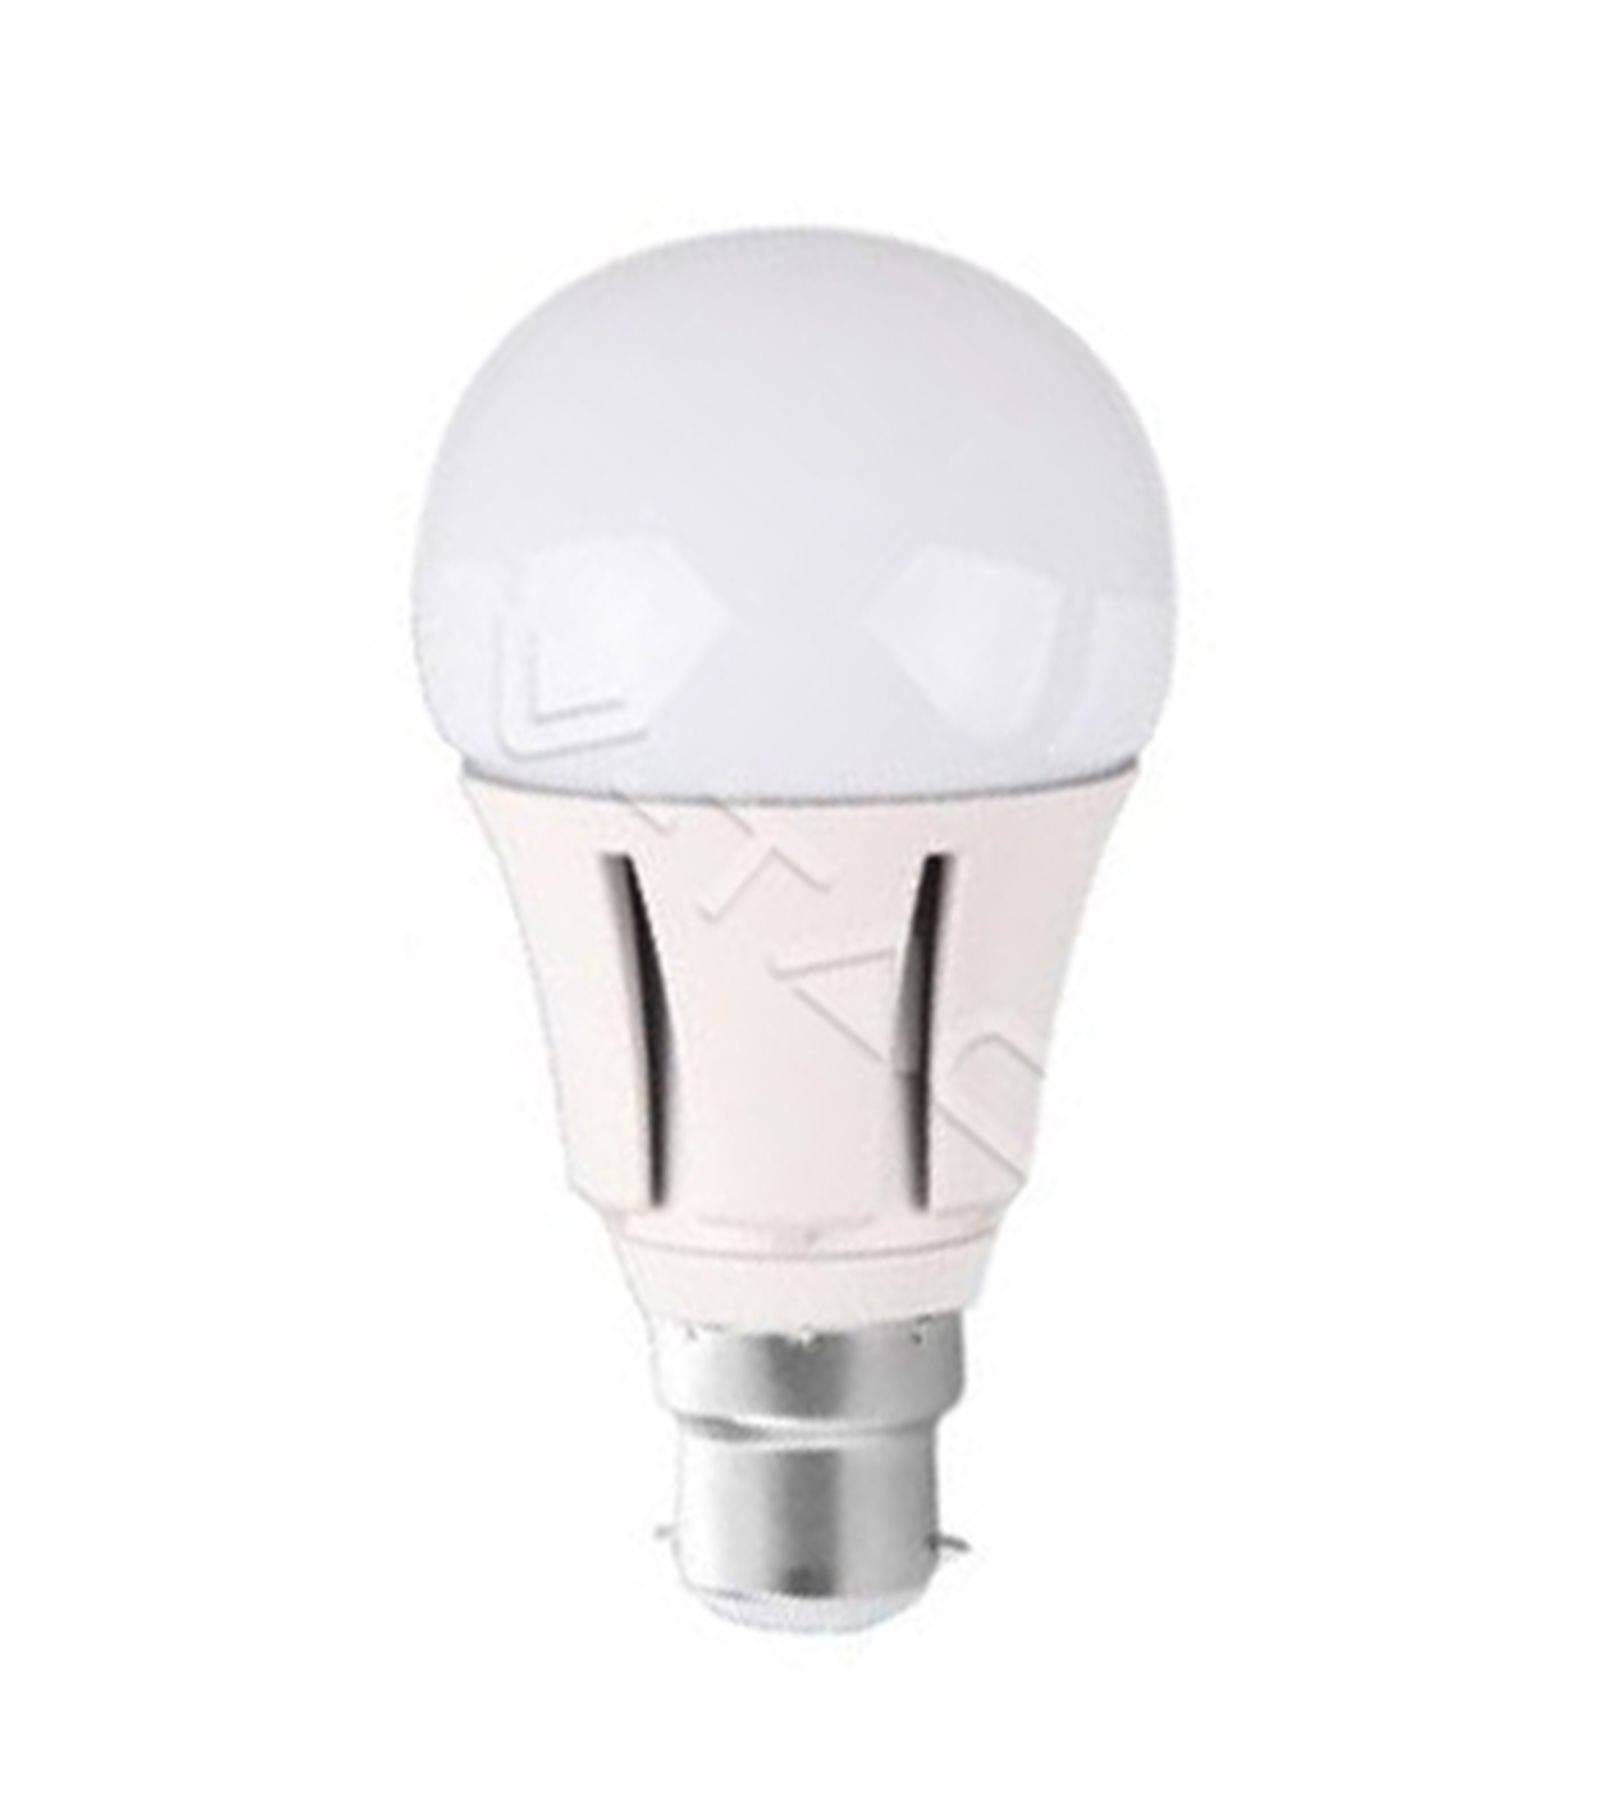 Ampoule Led Dimmable Destockage Ampoule Led B22 Dimmable Samsung Chip 10w 806lm équiv 60w Blanc Neutre 190 V Tac